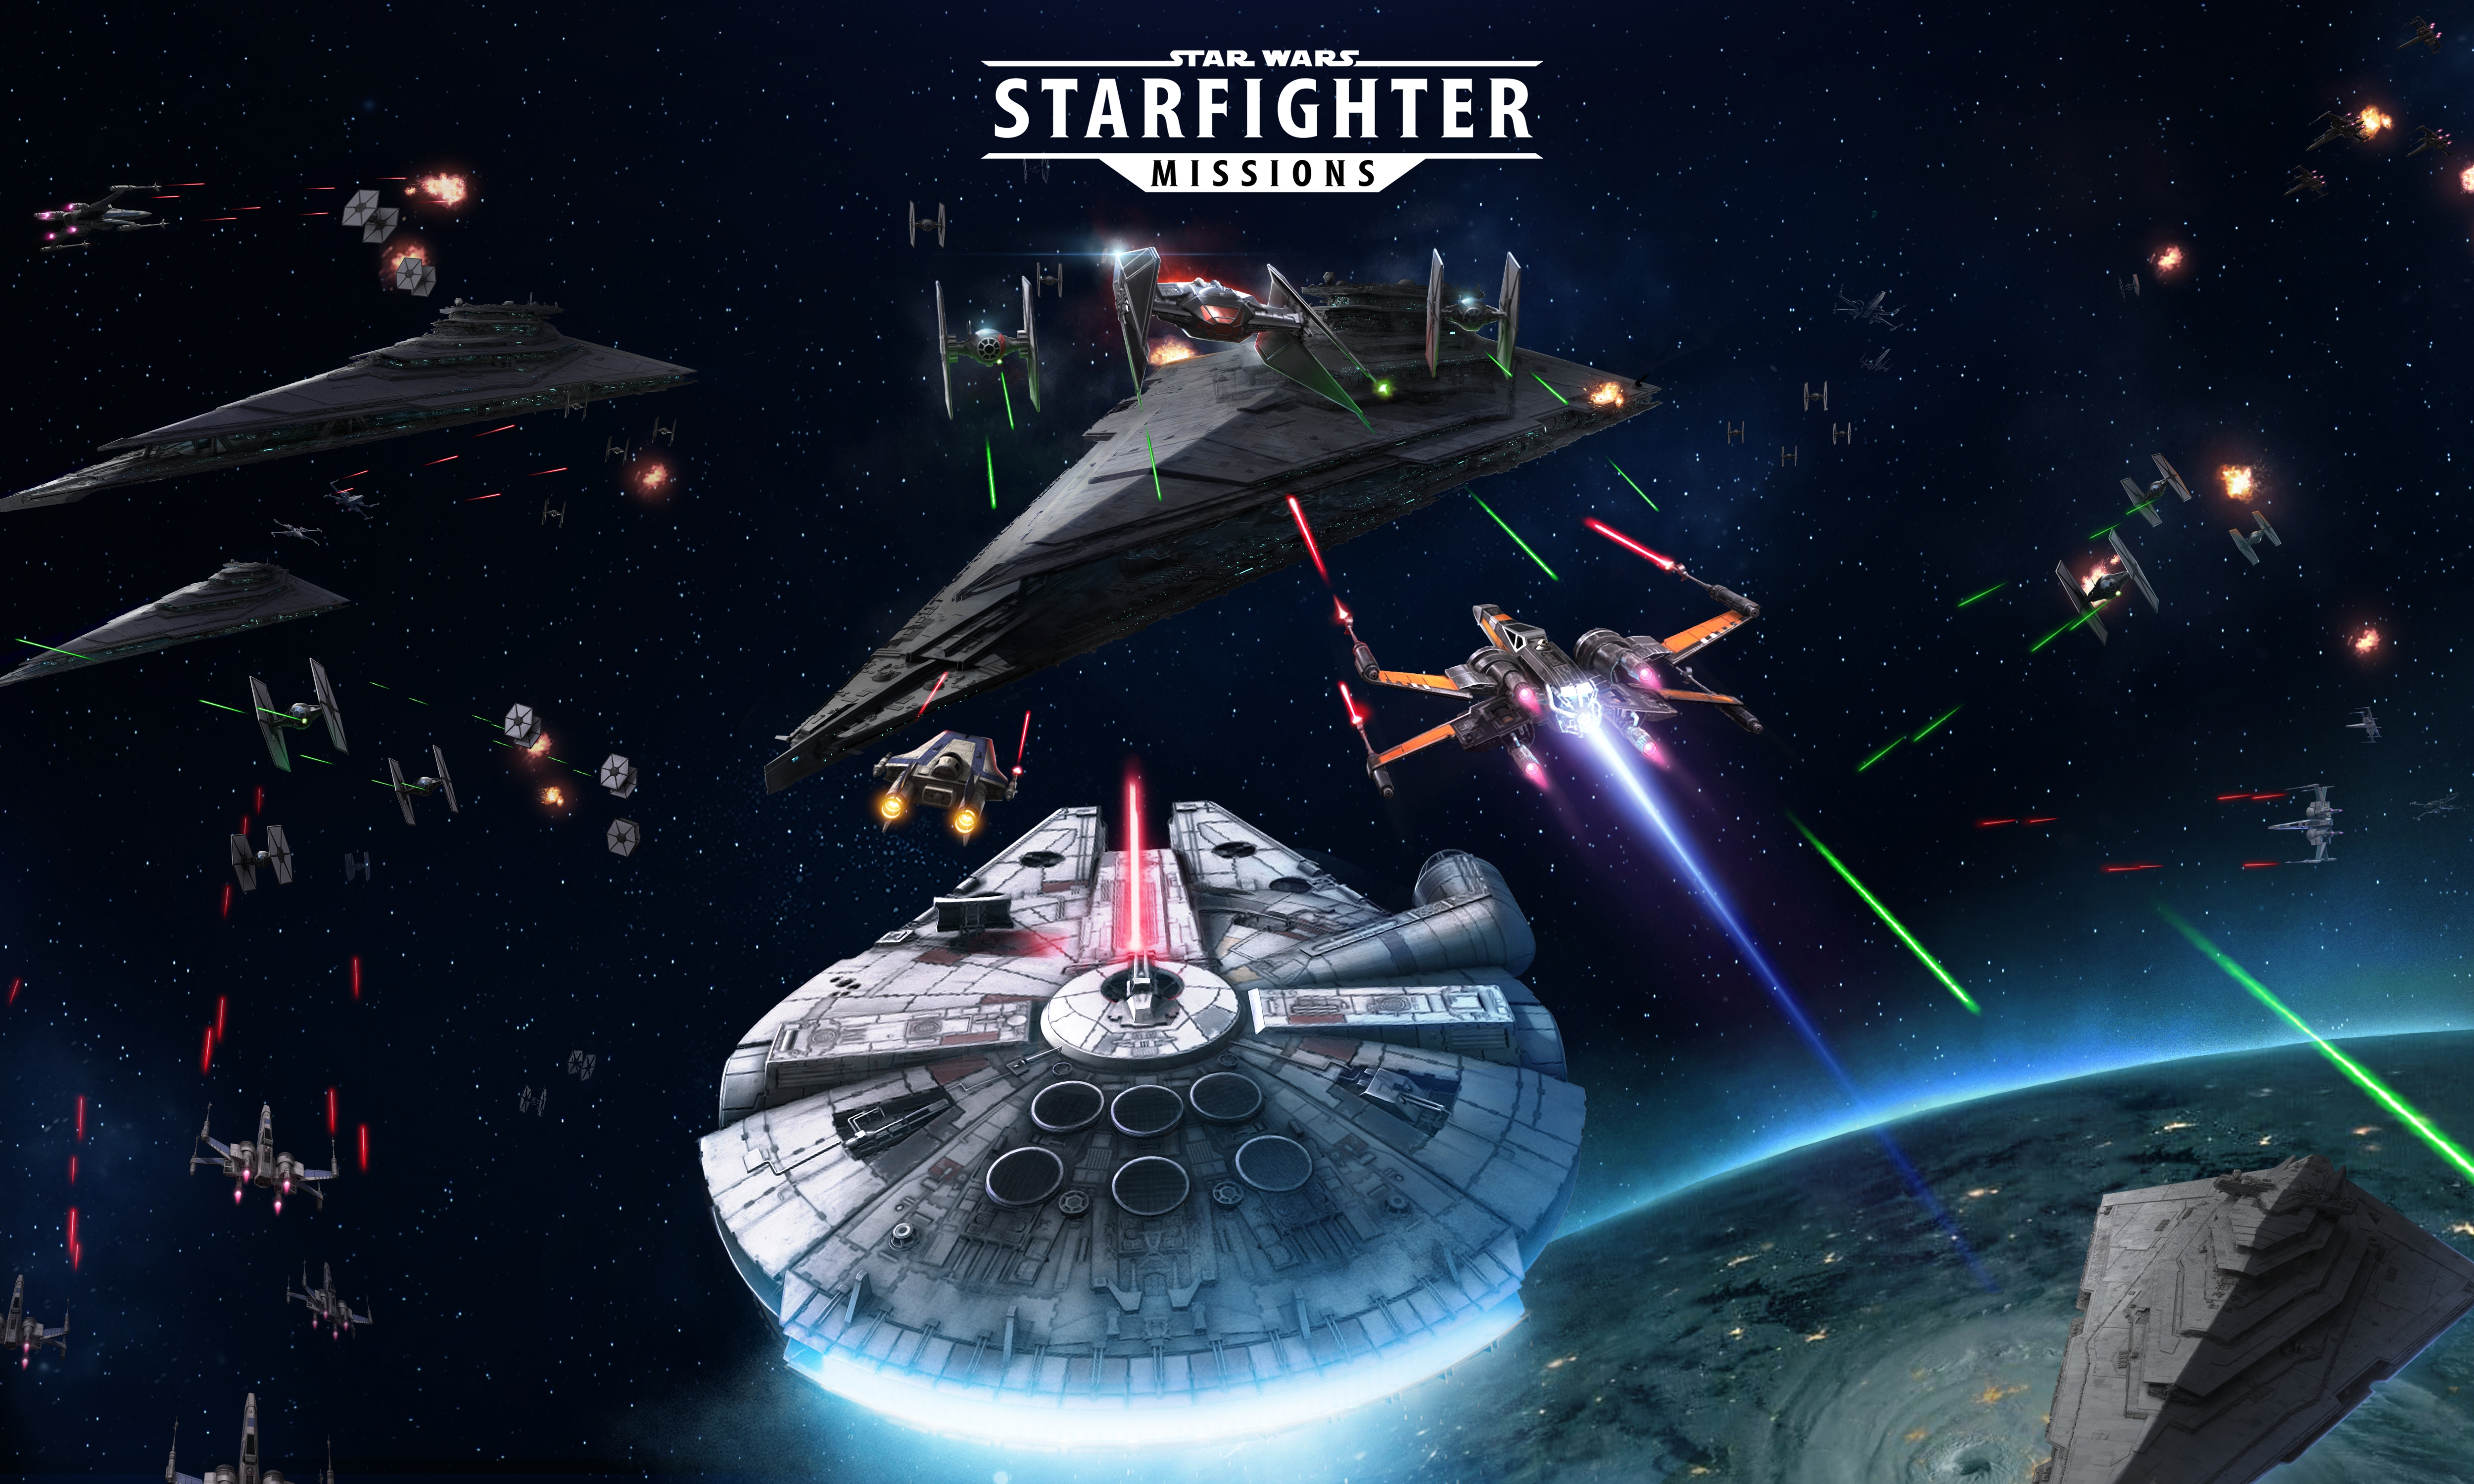 The first Star Wars mobile flight shooter allows players to collect, upgrade and pilot over 80 starfighters